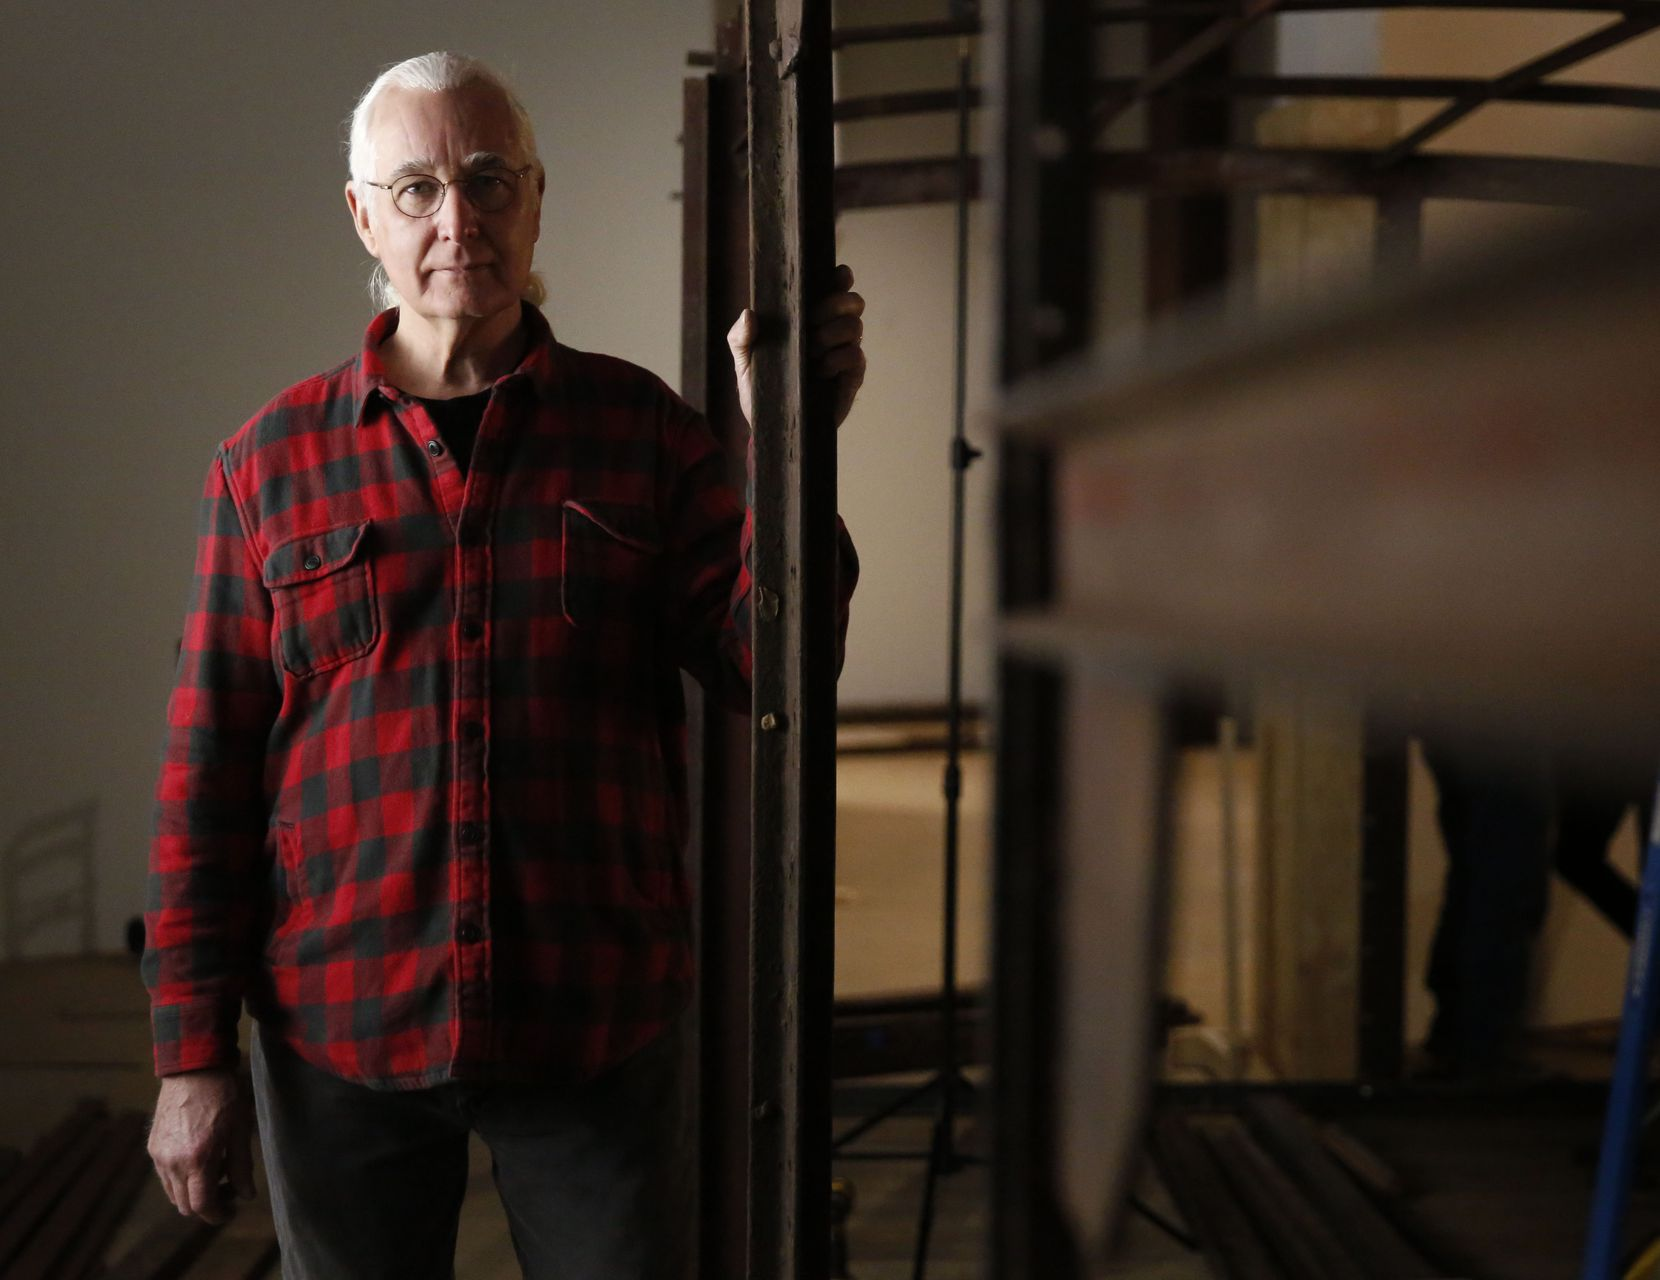 Historic preservationist Ron Siebler has overseen the restoration of the WWII-era boxcar for the past two and a half years.